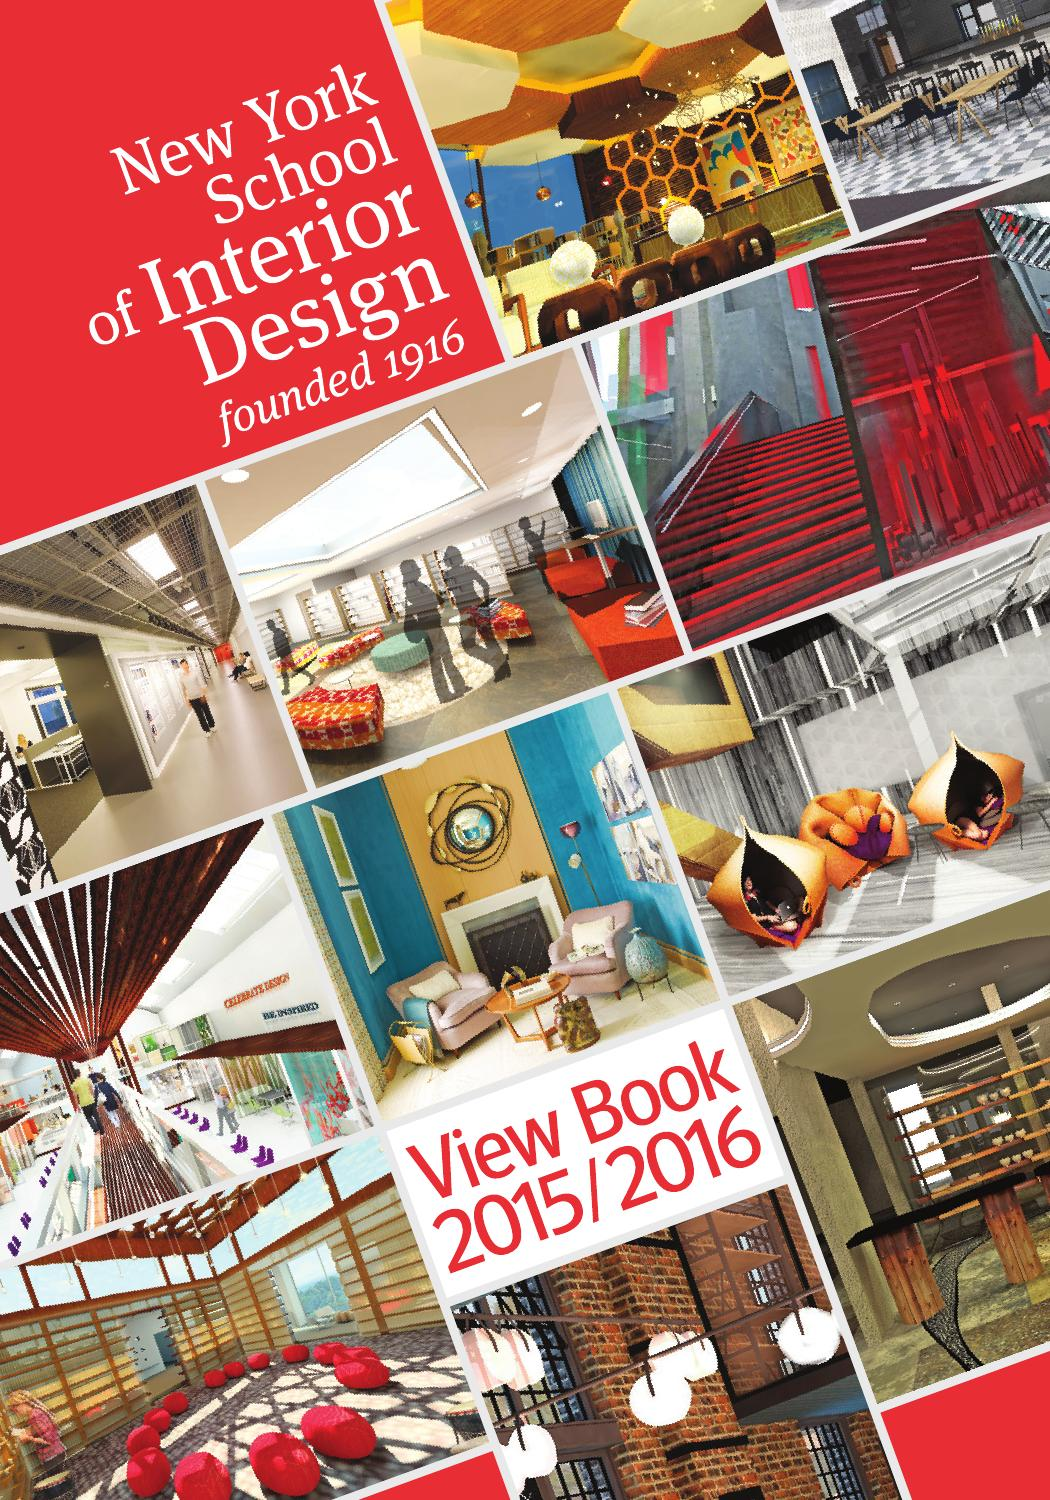 Nysid view book 2015 2016 by new york school of interior design issuu for Interior design schools new york